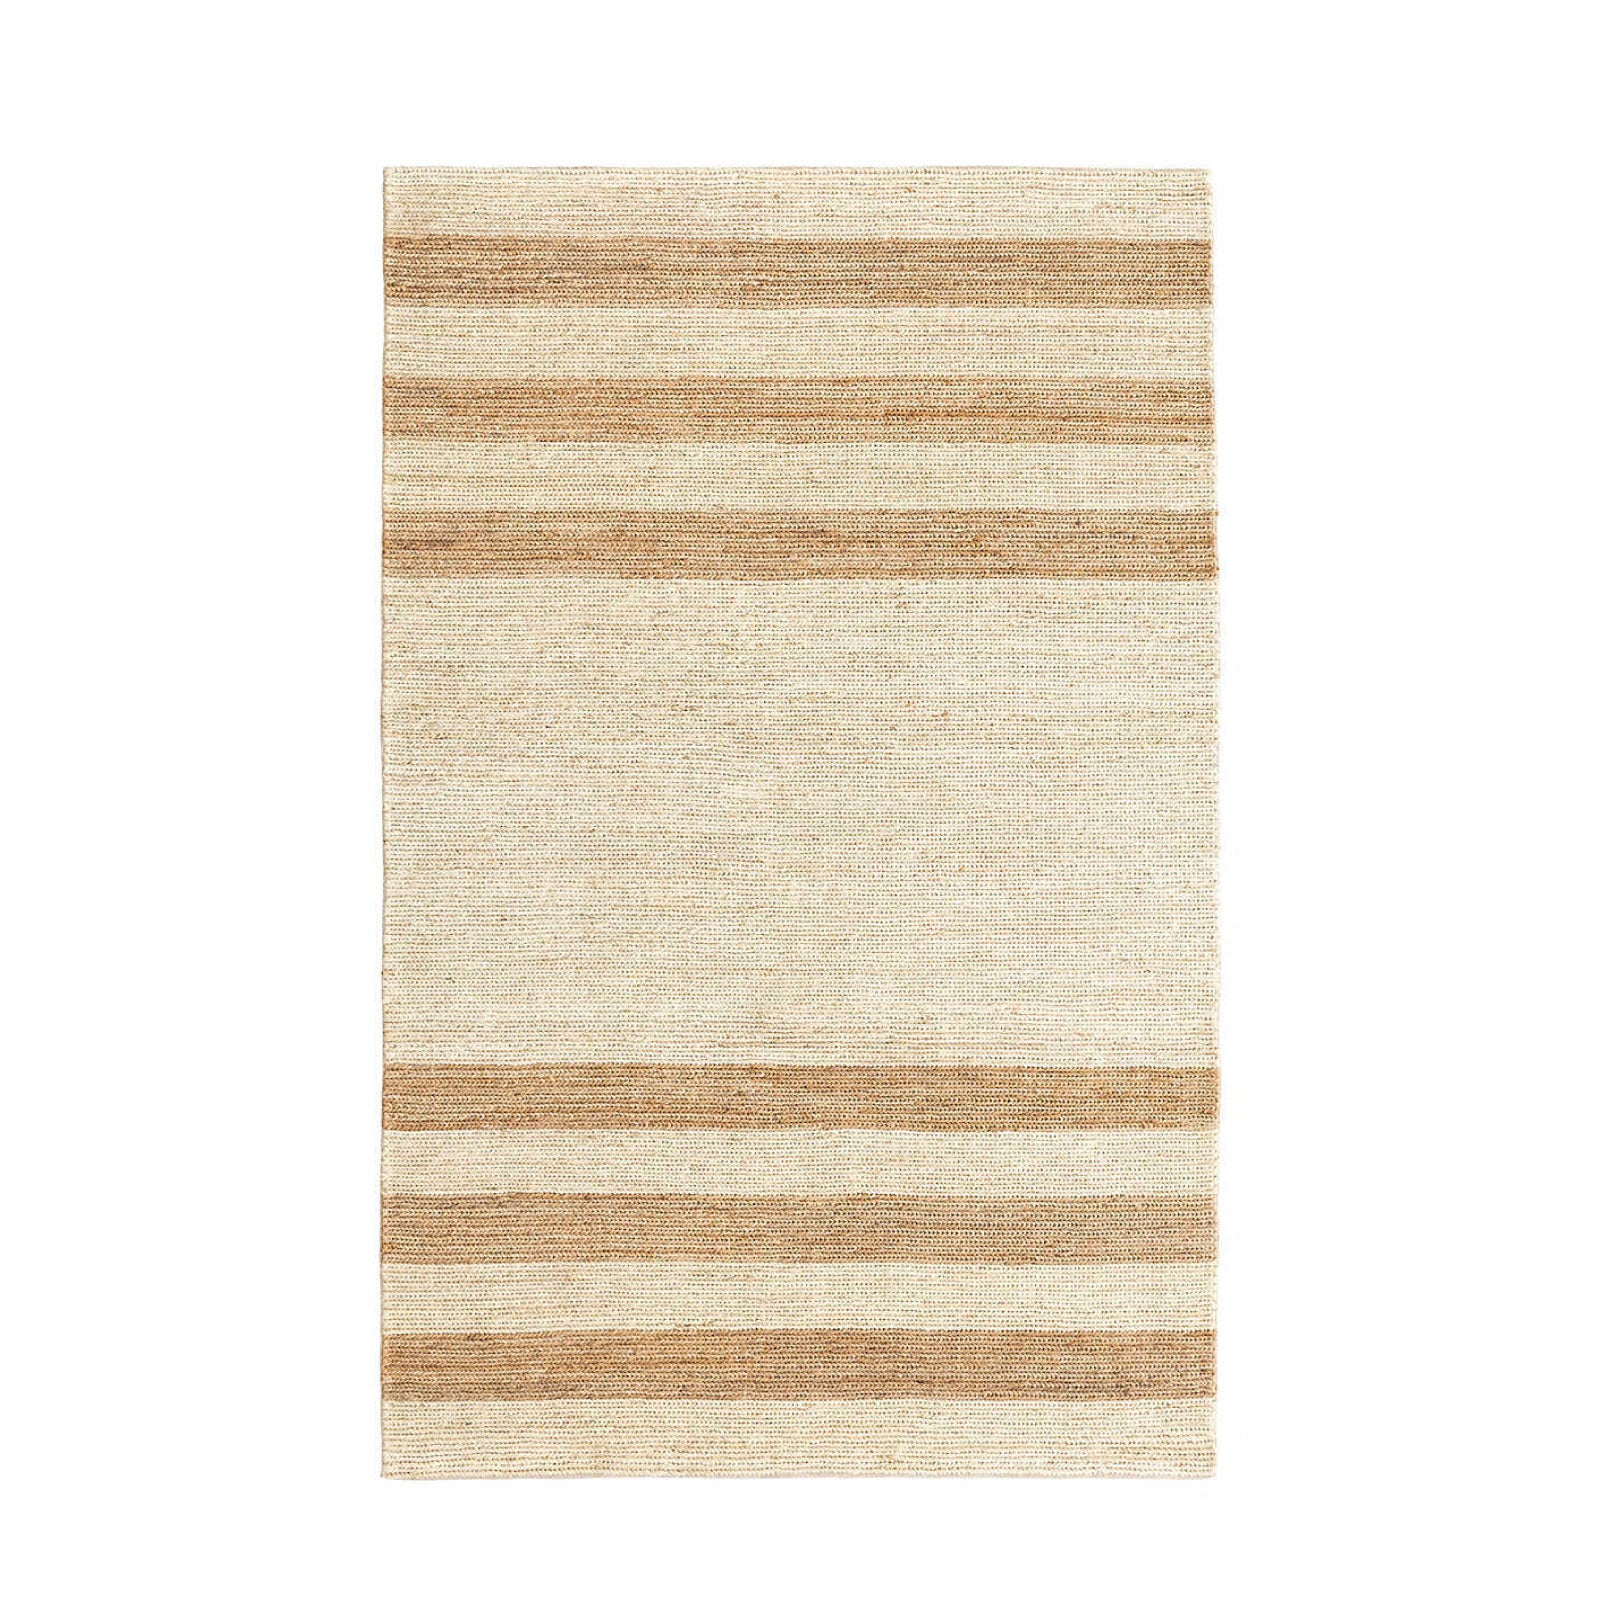 Williams Woven Jute Rug in Natural